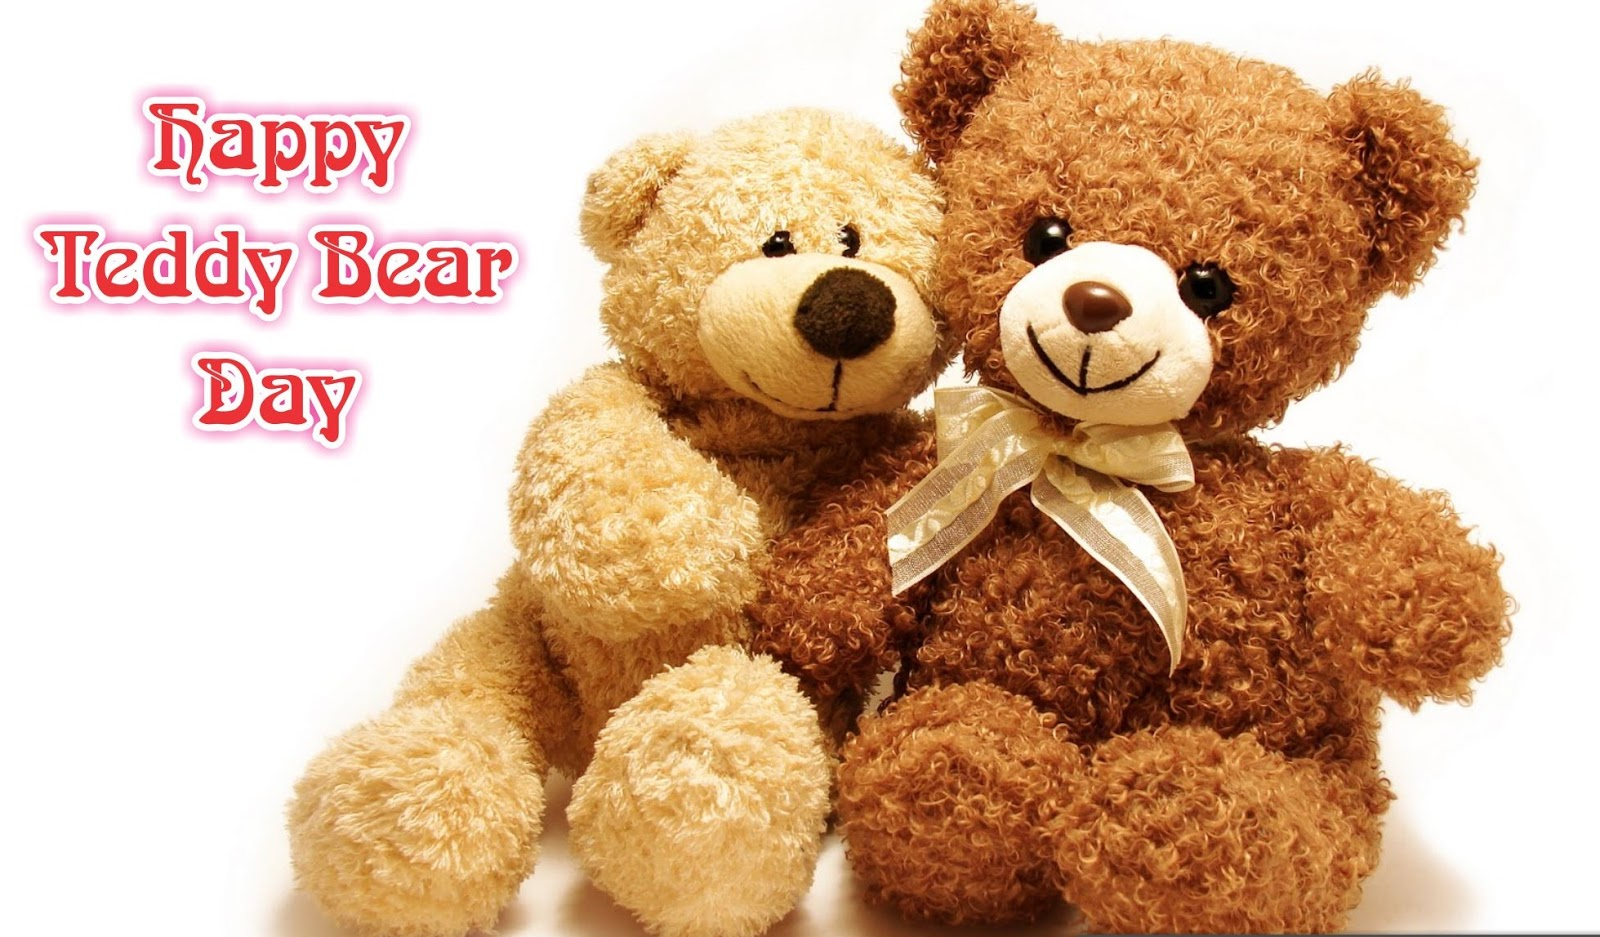 Happy Teddy Bear Day 2017 HD Image Free Download